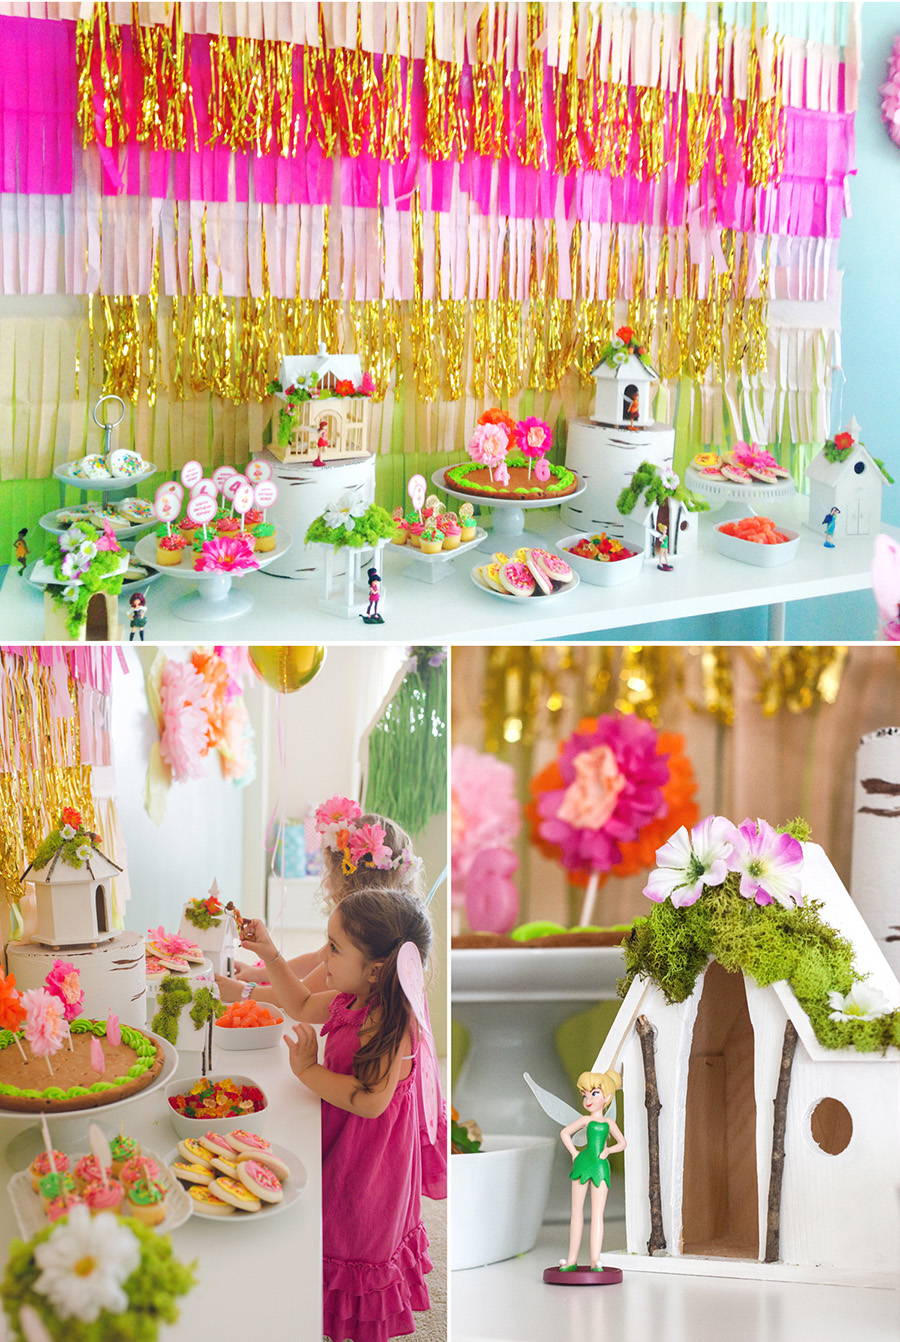 Sophia siennas fairy birthday party at home with natalie plates and ikea bowls fairy party dessert table 1 izmirmasajfo